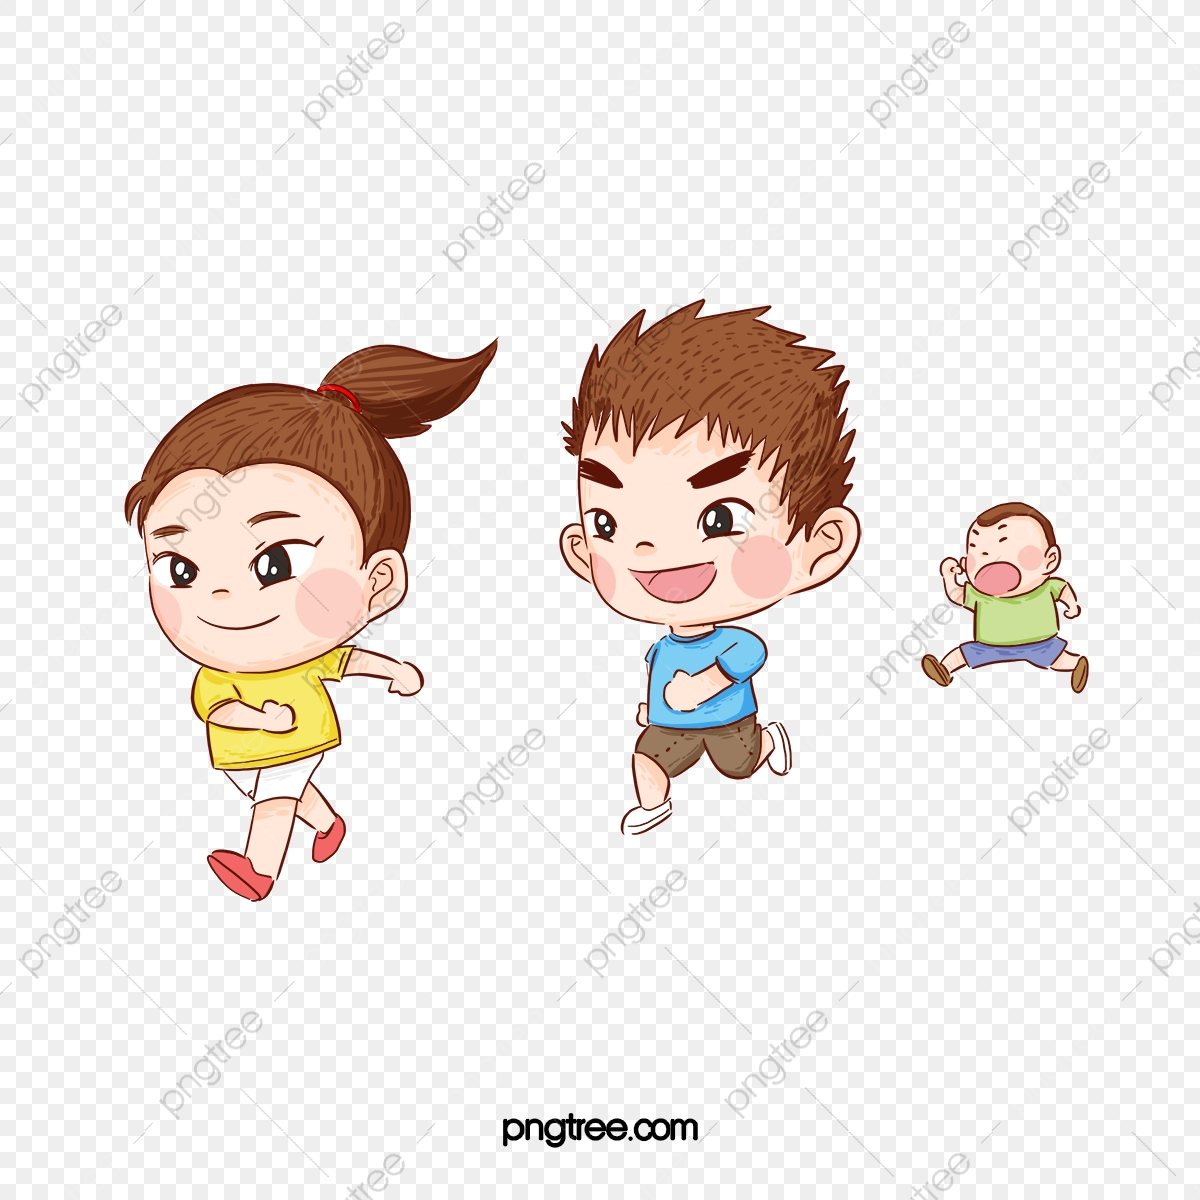 Cute Big Eyes Kid Running Lovely Big Eyes Child Png Transparent